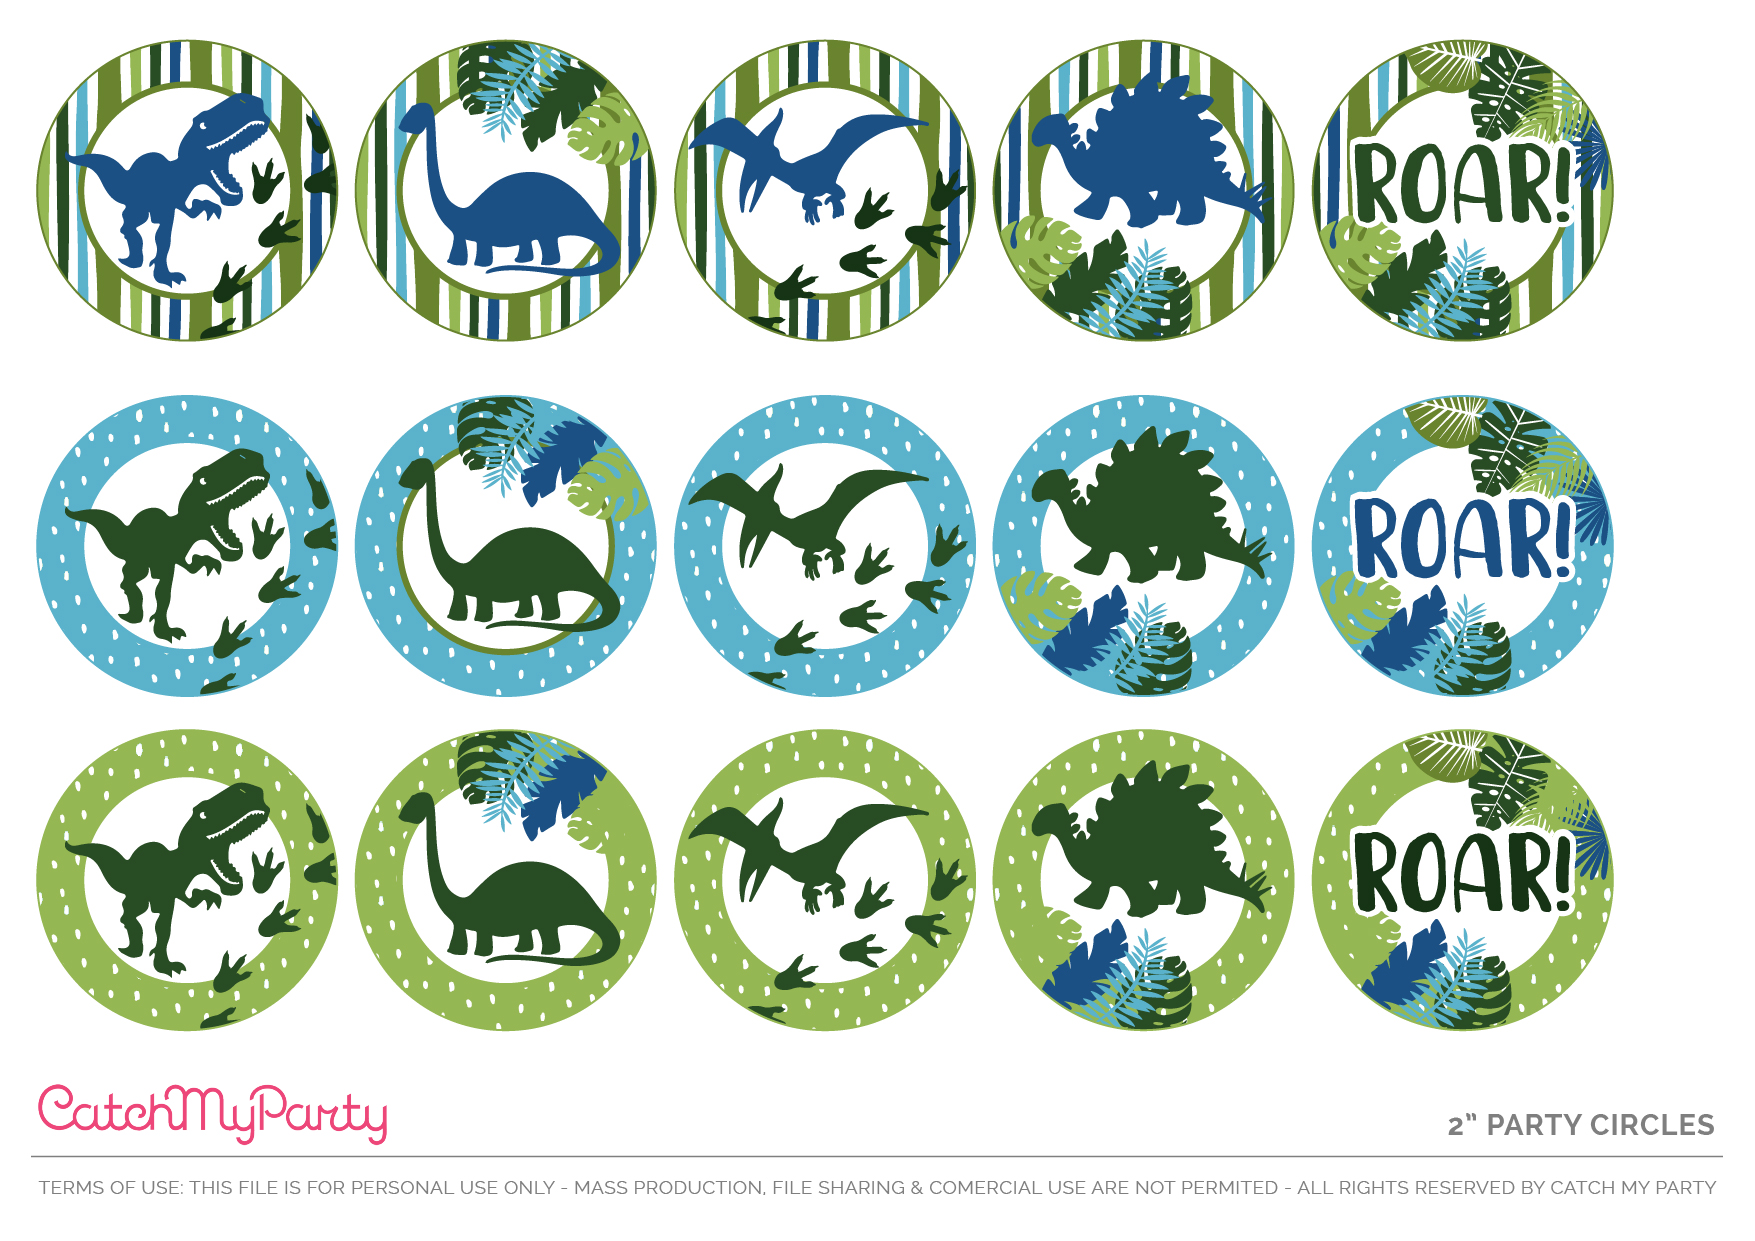 Download These Free Dinosaur Party Printables - Party circles